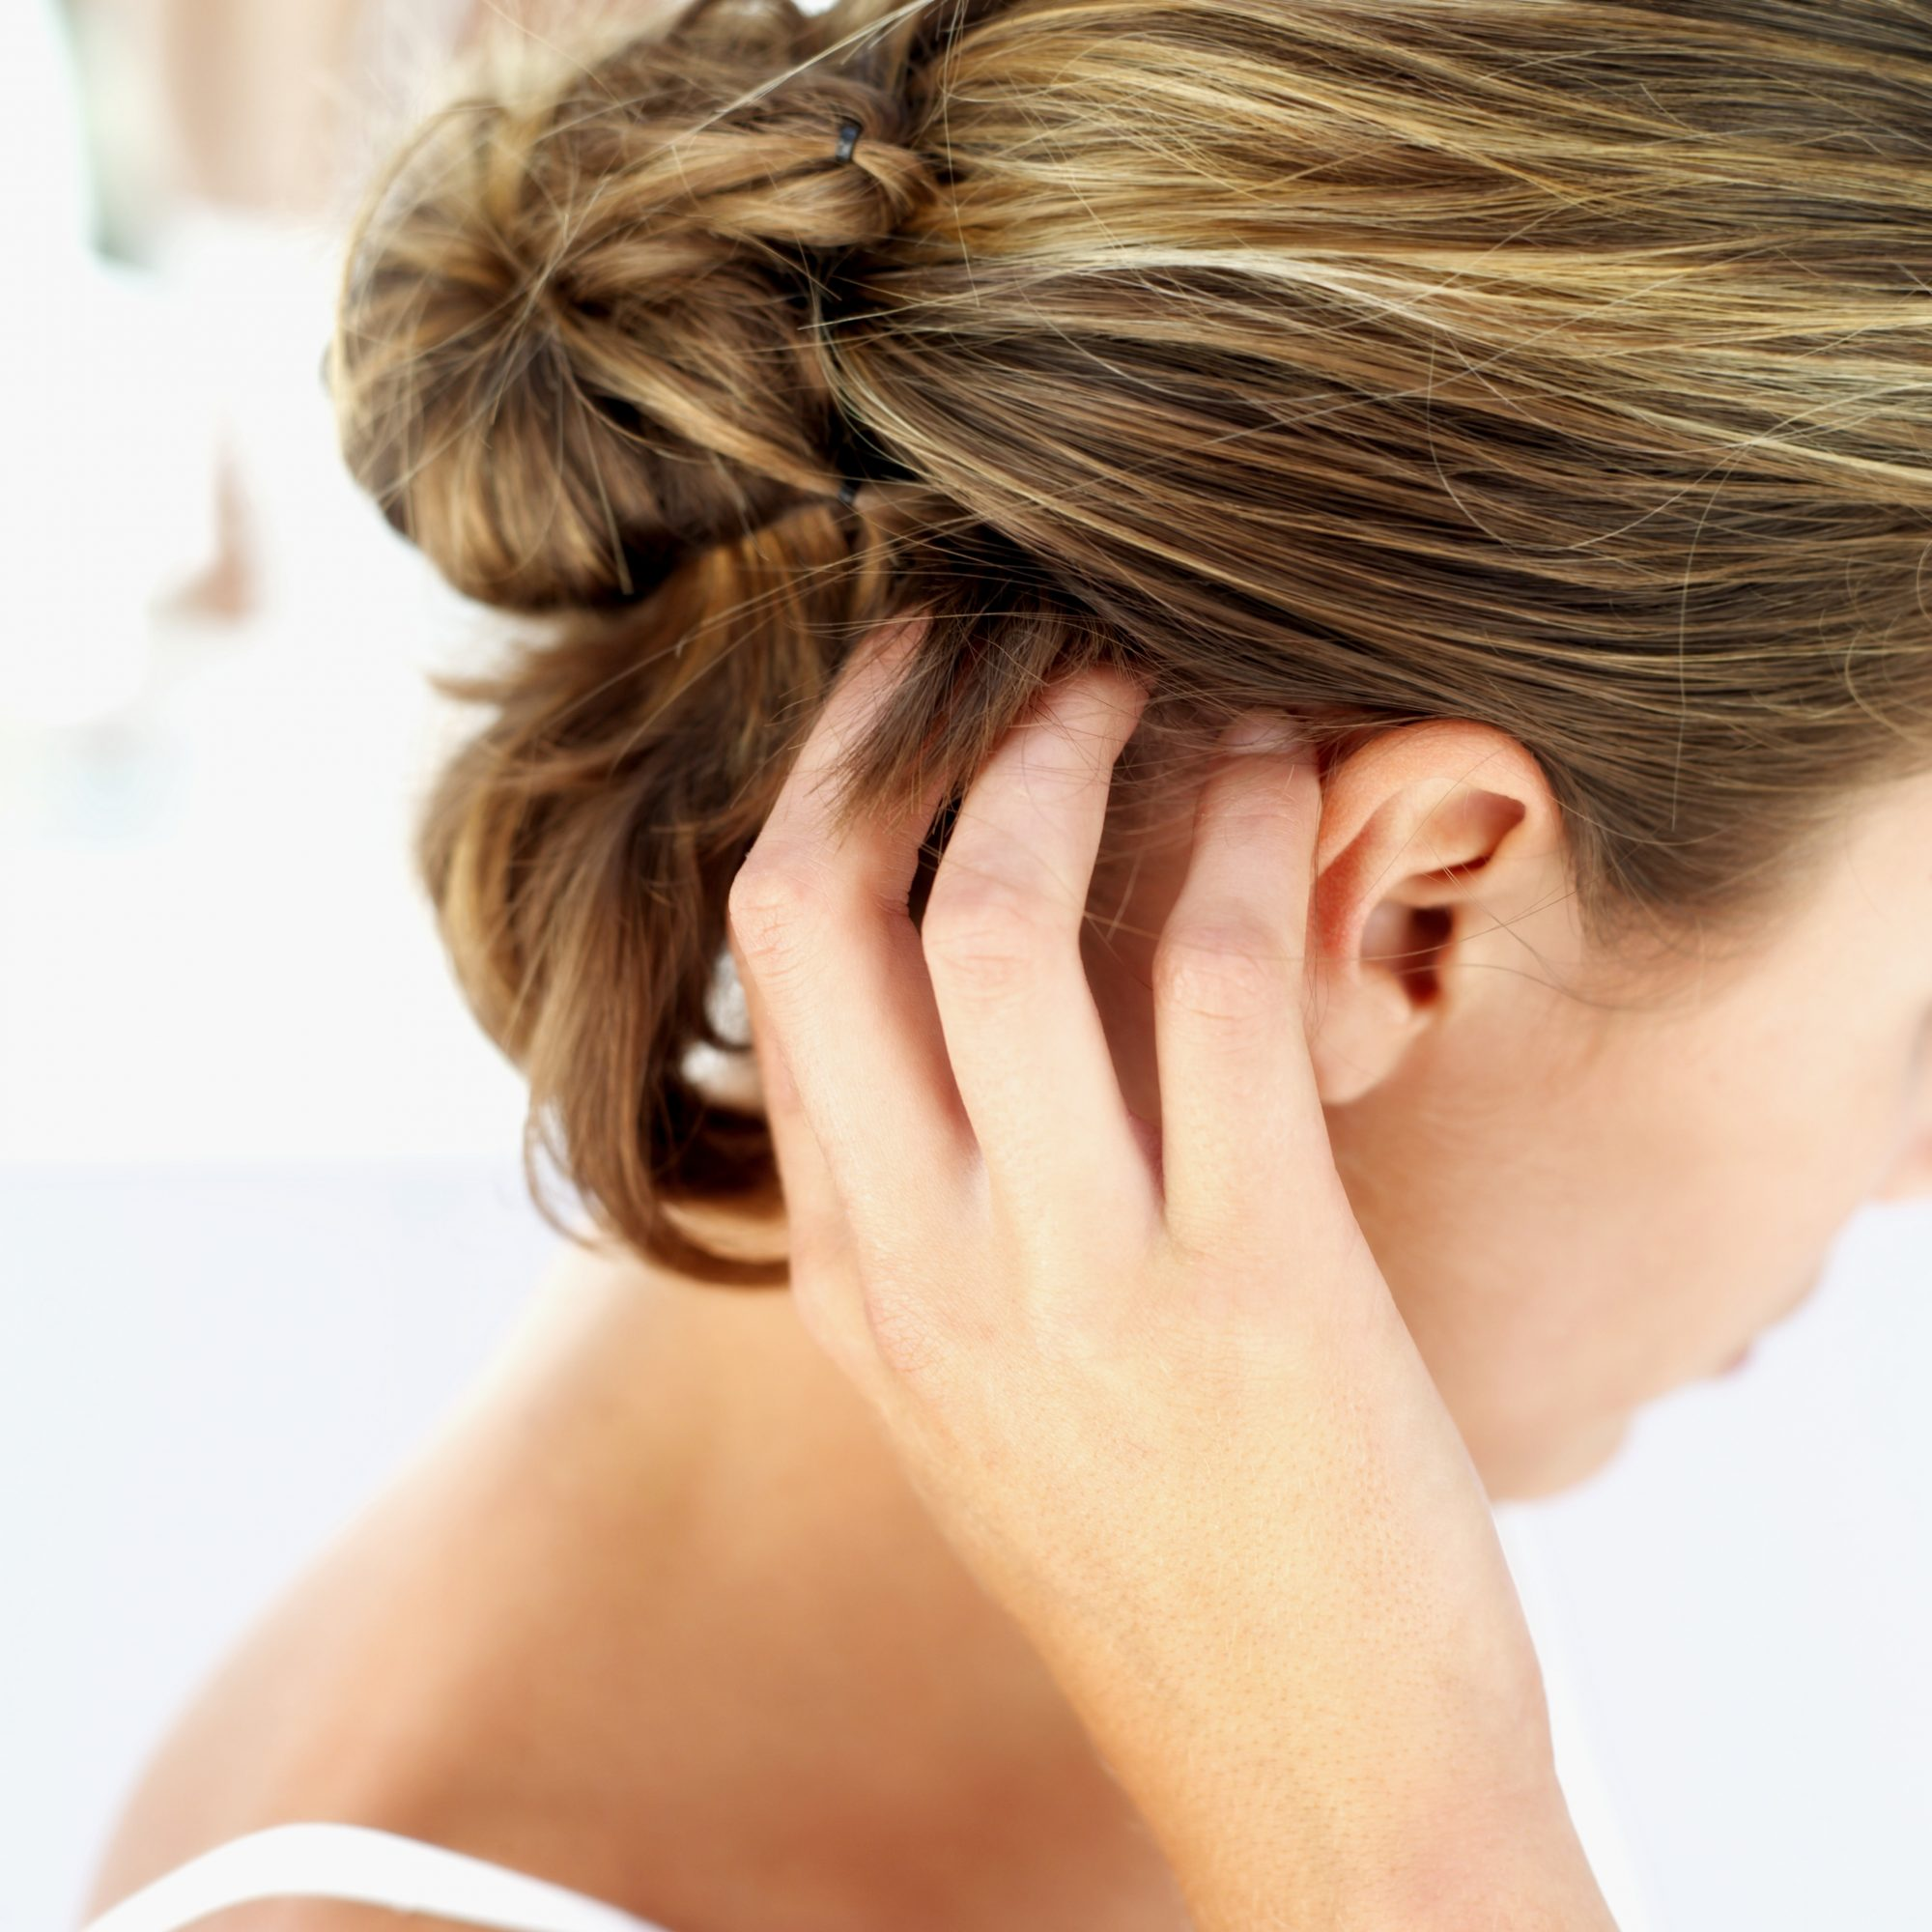 How Managing Stress May Help Your Psoriasis